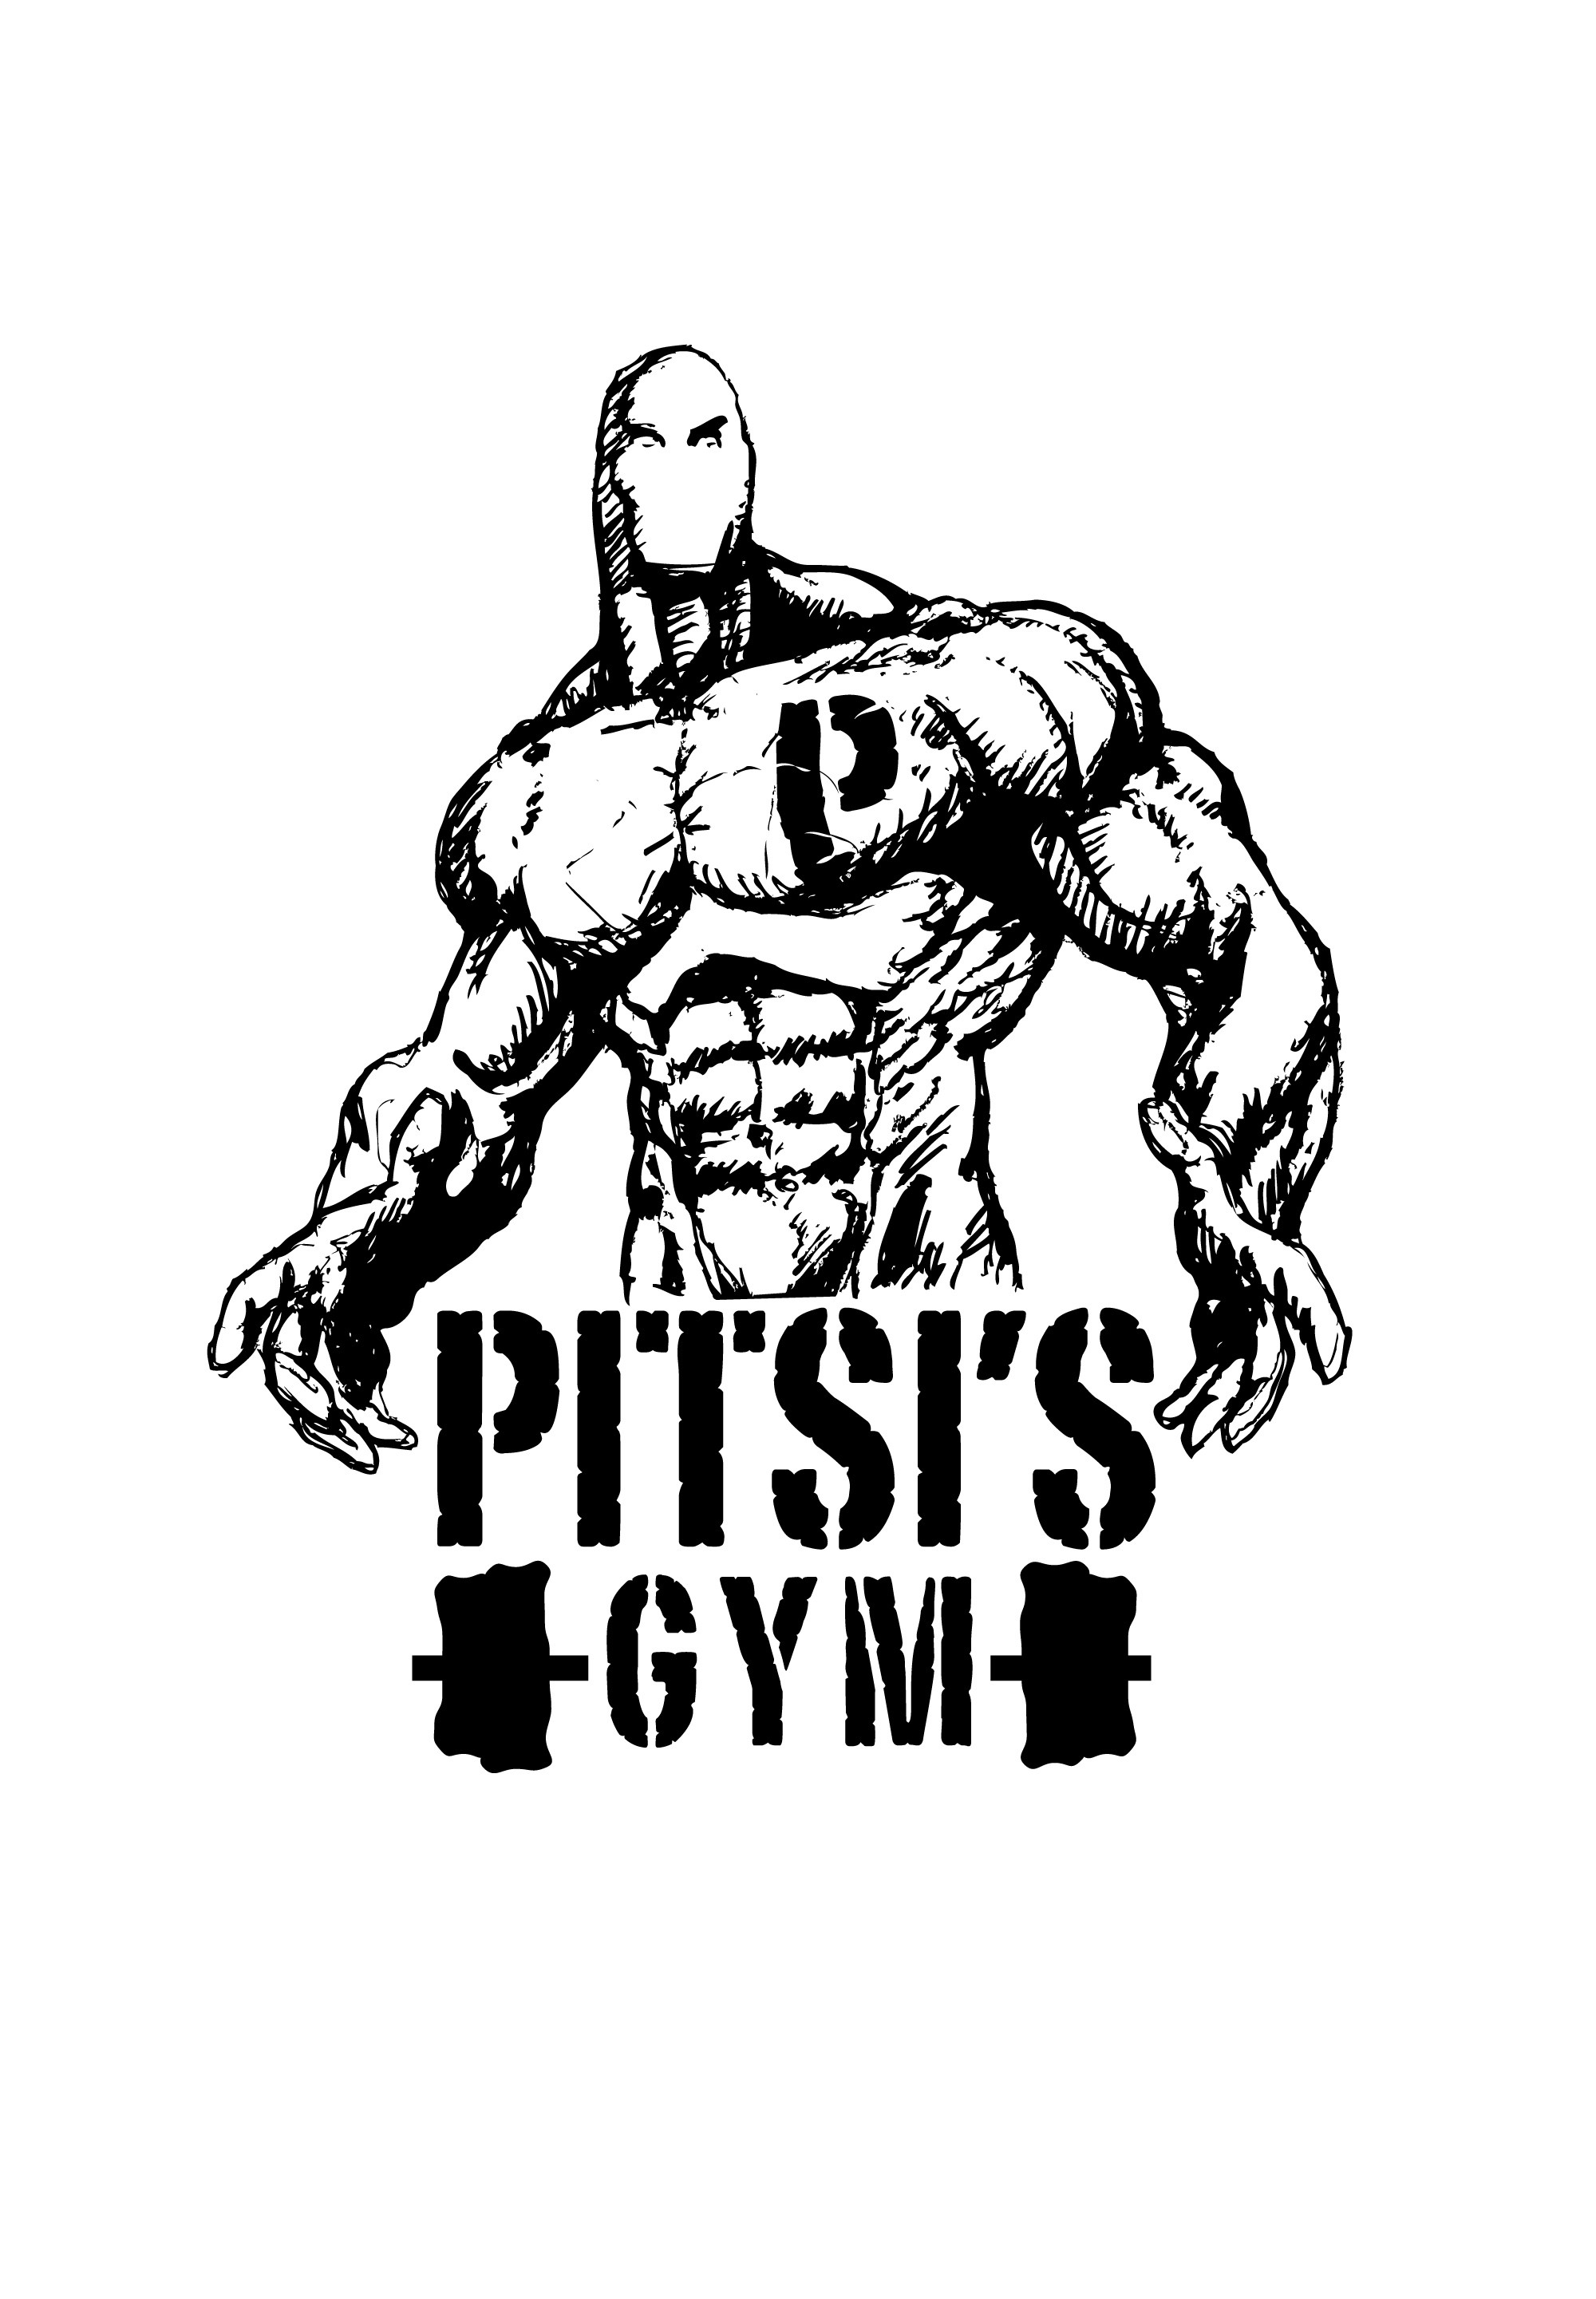 Create a badass imposing comic book character for Pitsi's Gym